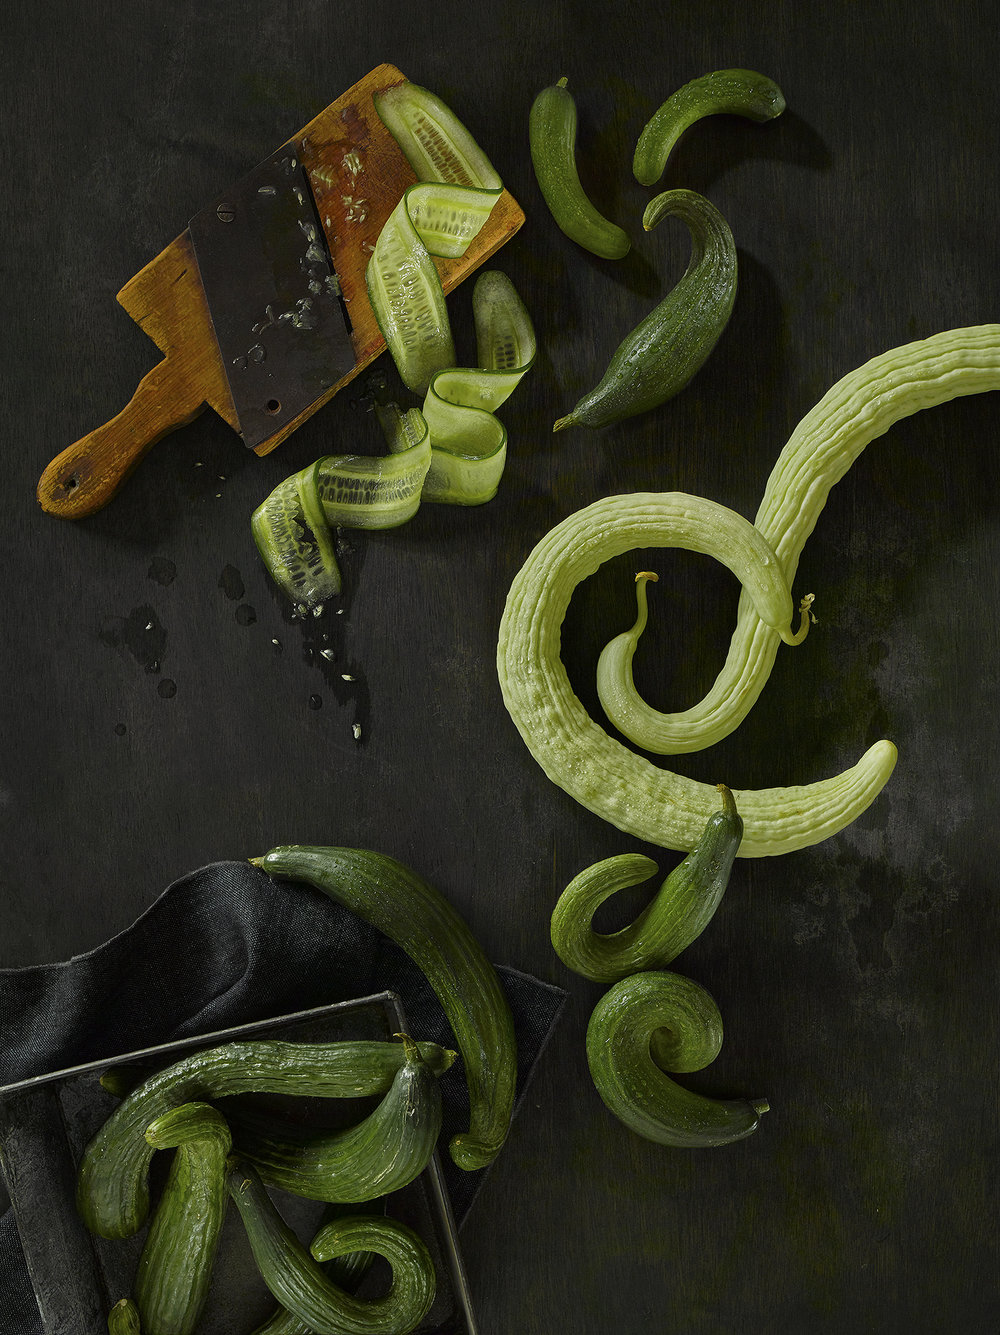 Creative still lifestyle food photography, Curly cucumbers arranged in lifestyle setting by London photographer chris howlett